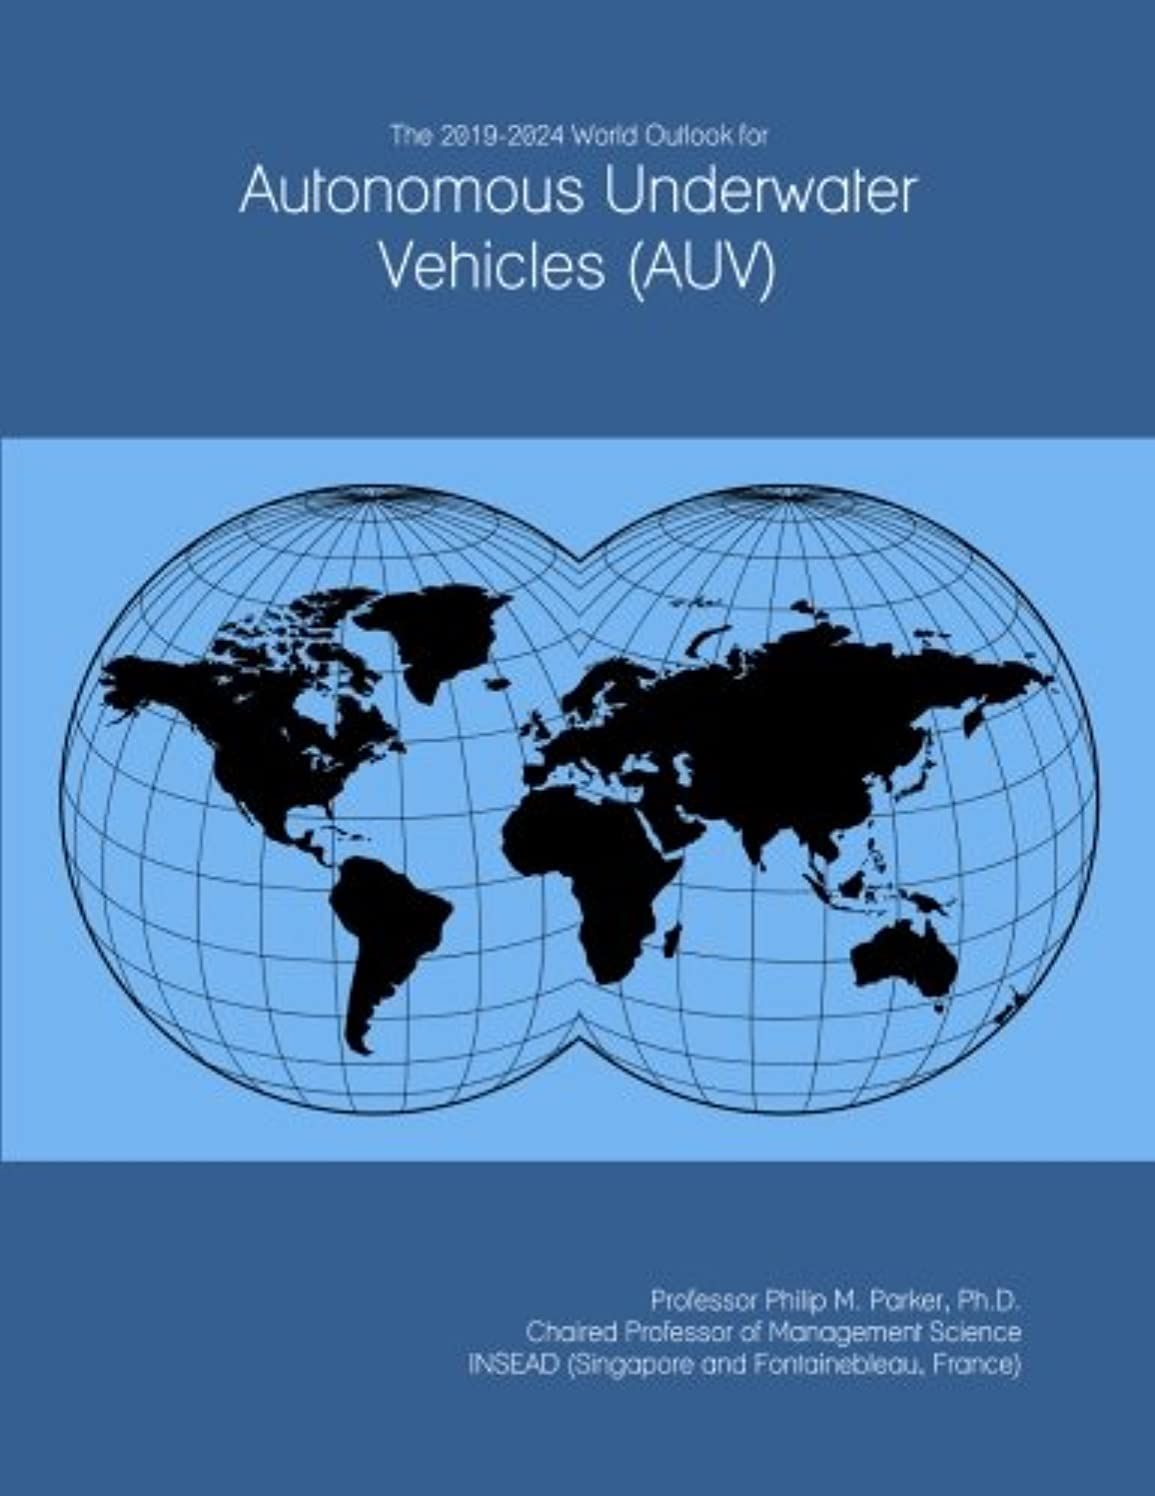 指定奇跡エキゾチックThe 2019-2024 World Outlook for Autonomous Underwater Vehicles (AUV)